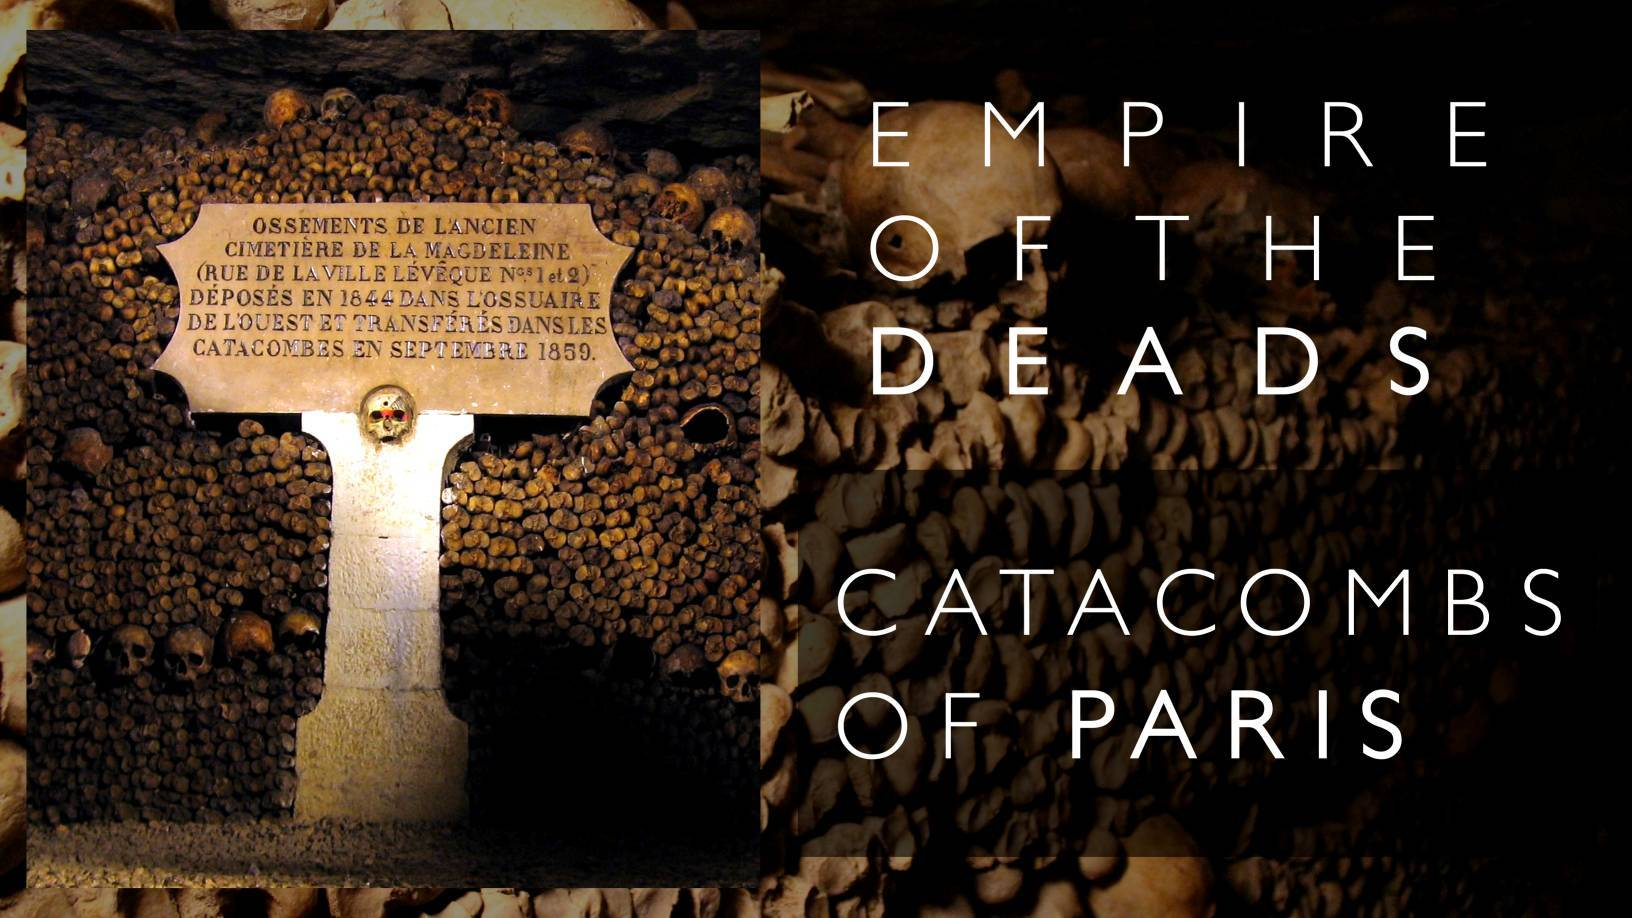 Catacombs: The empire of the deads beneath the streets of Paris 5